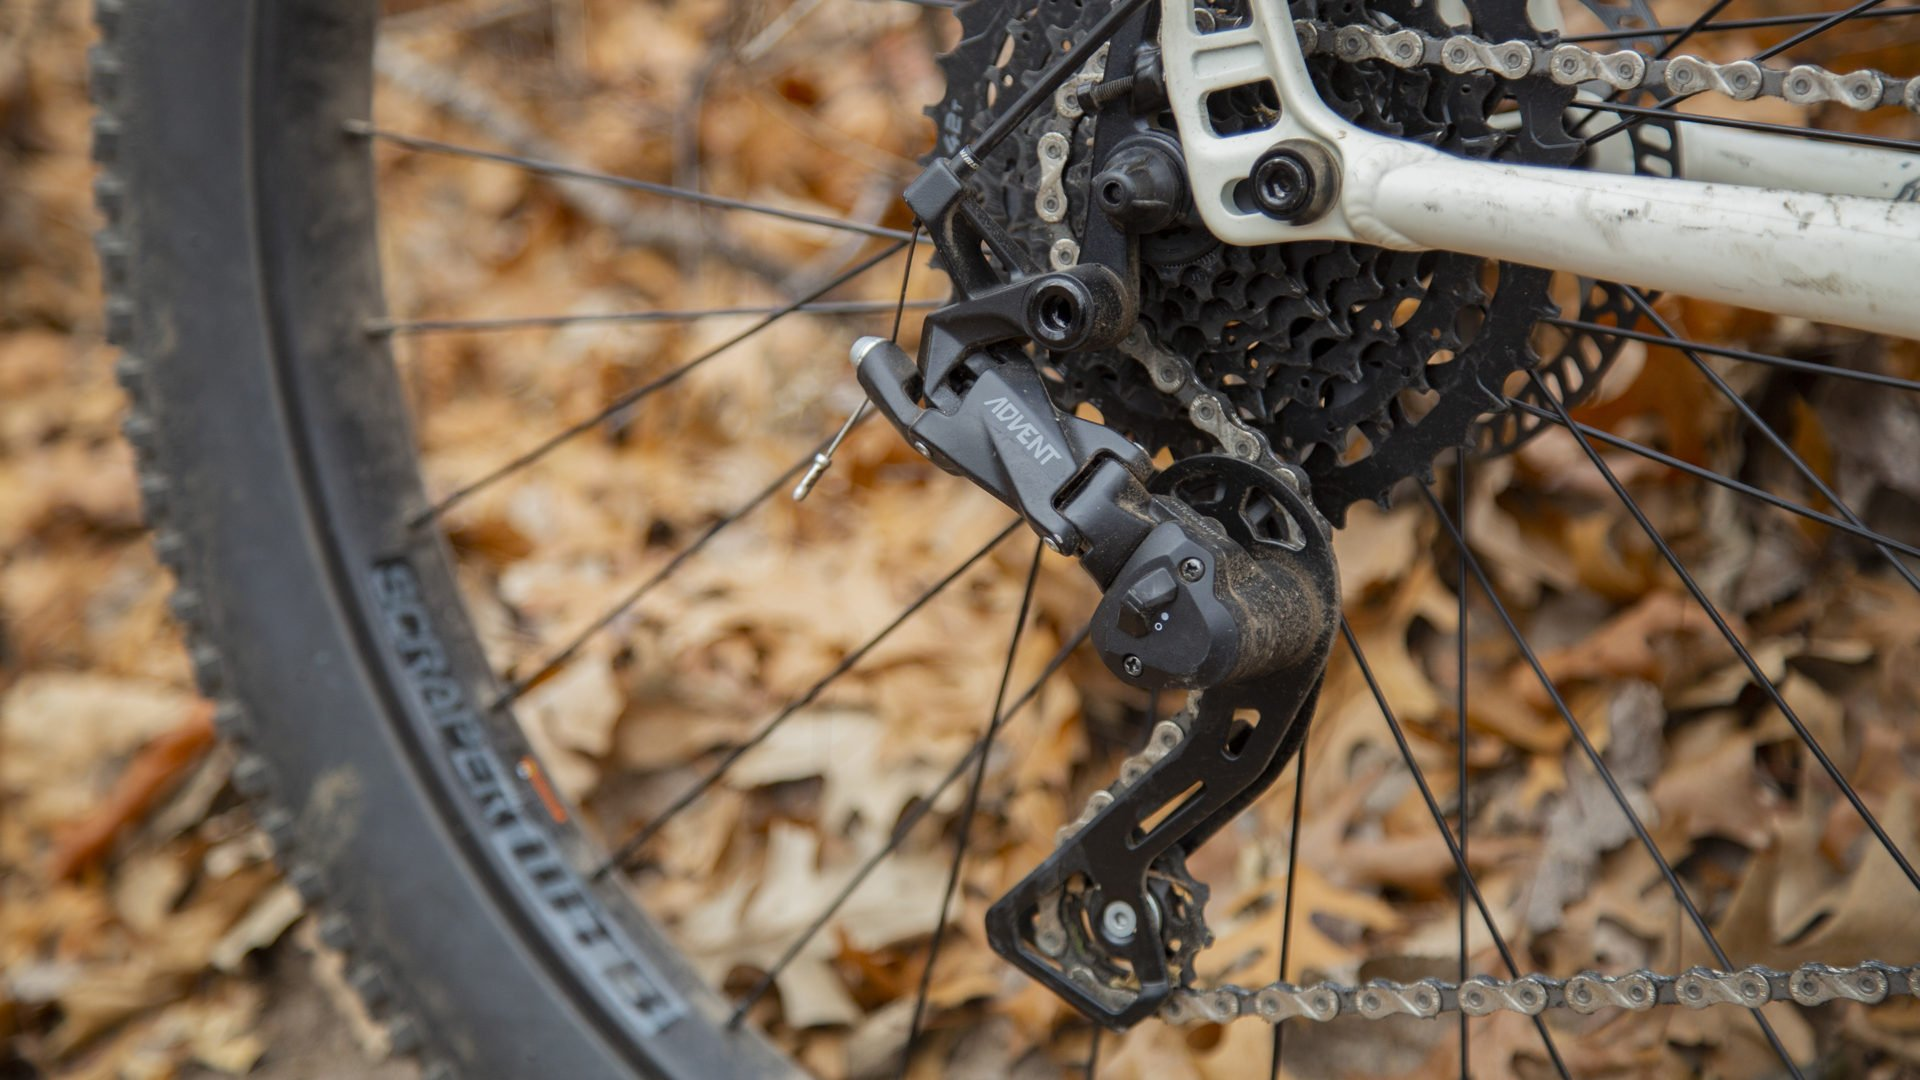 MicroSHIFT Announces a New 9 Speed System With Clutch